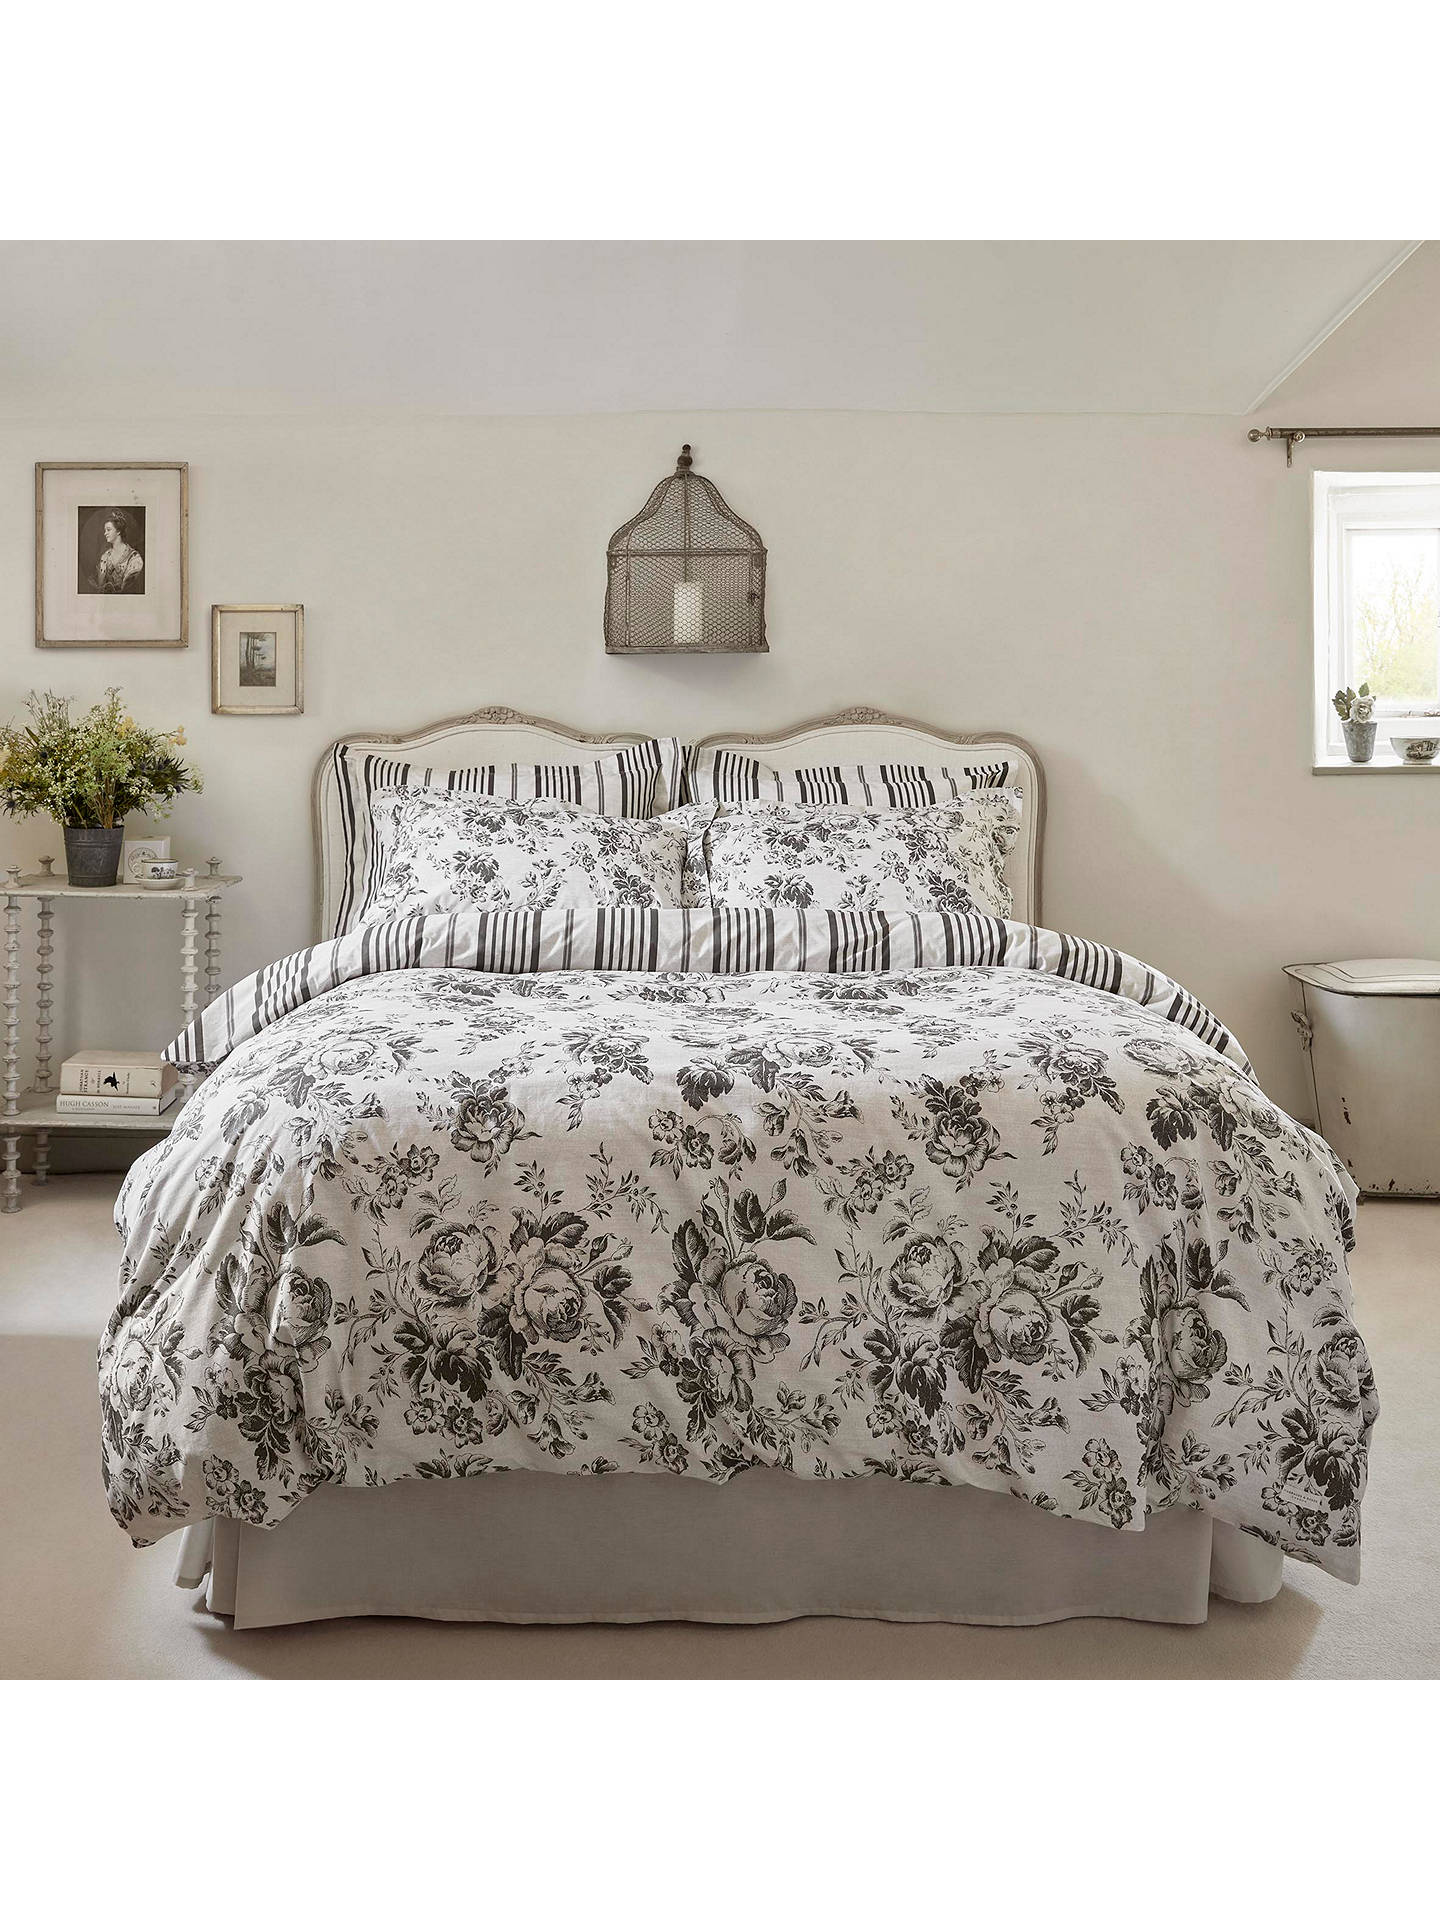 Buy Cabbages & Roses Paris Single Duvet Cover, Charcoal Online at johnlewis.com